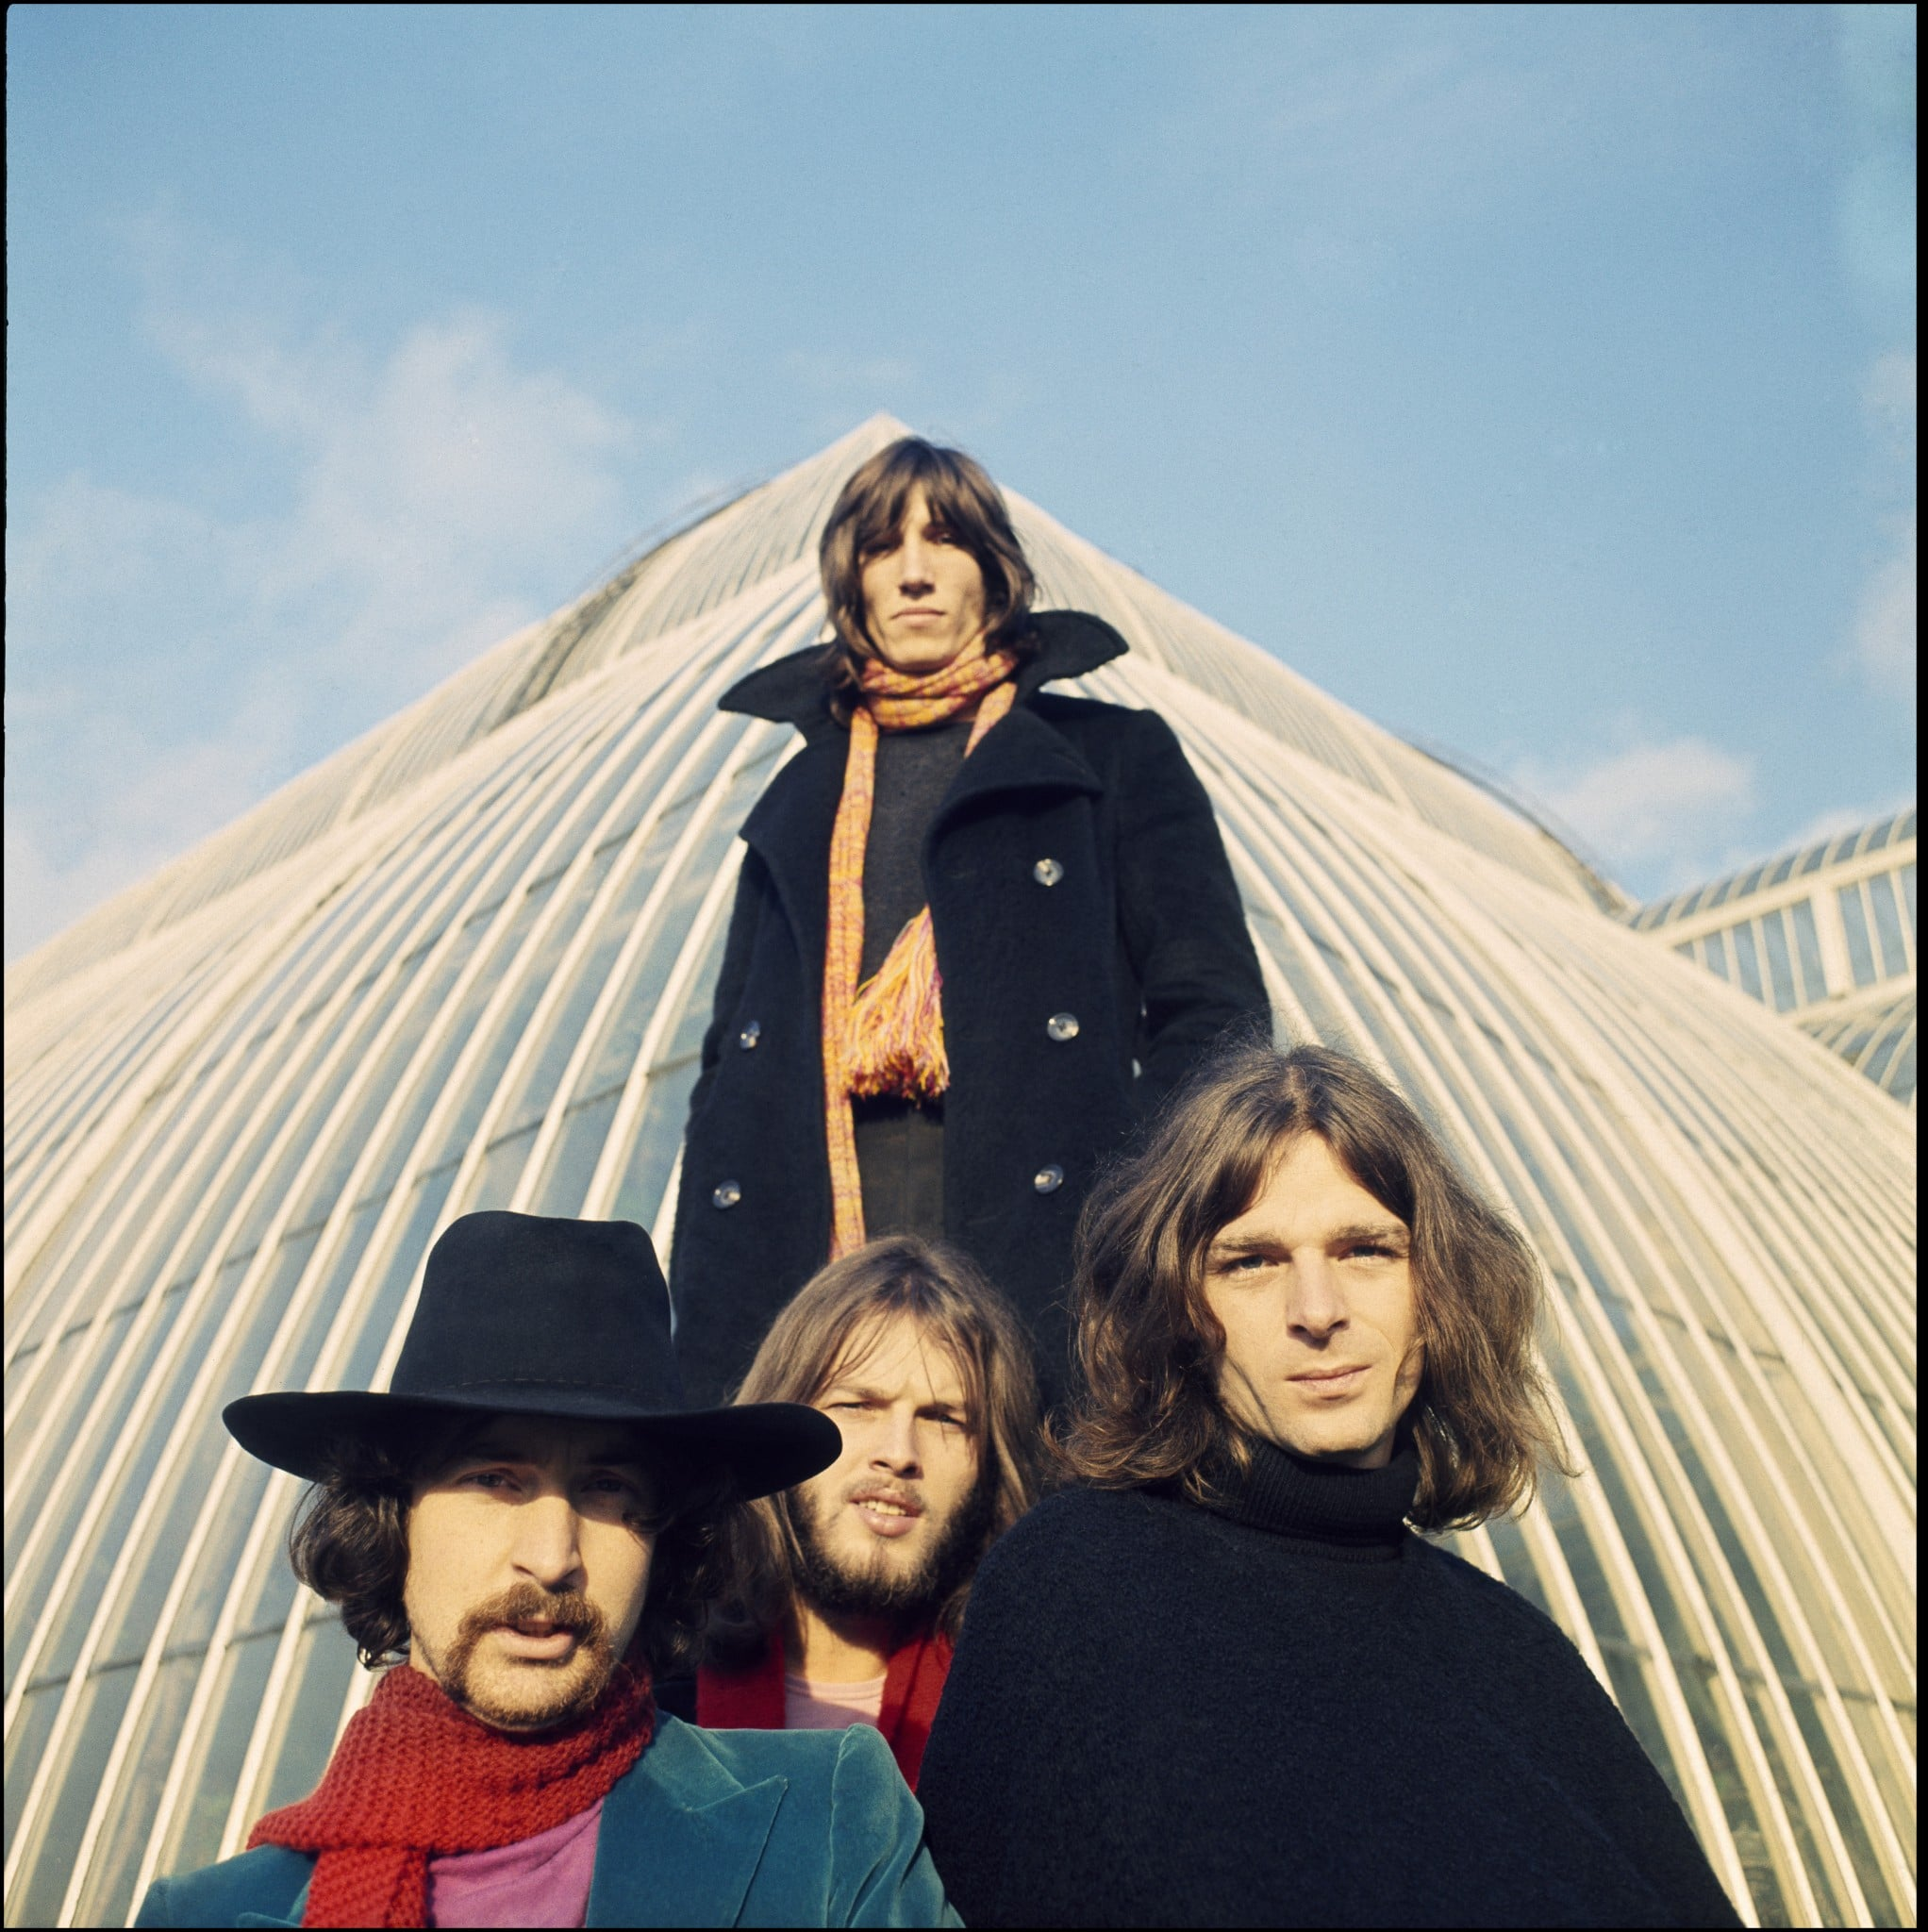 3_Pink_Floyd_NPA837A-8_-Photographer_Storm_Thorgerson_-_-Pink_Floyd_Music_Ltd